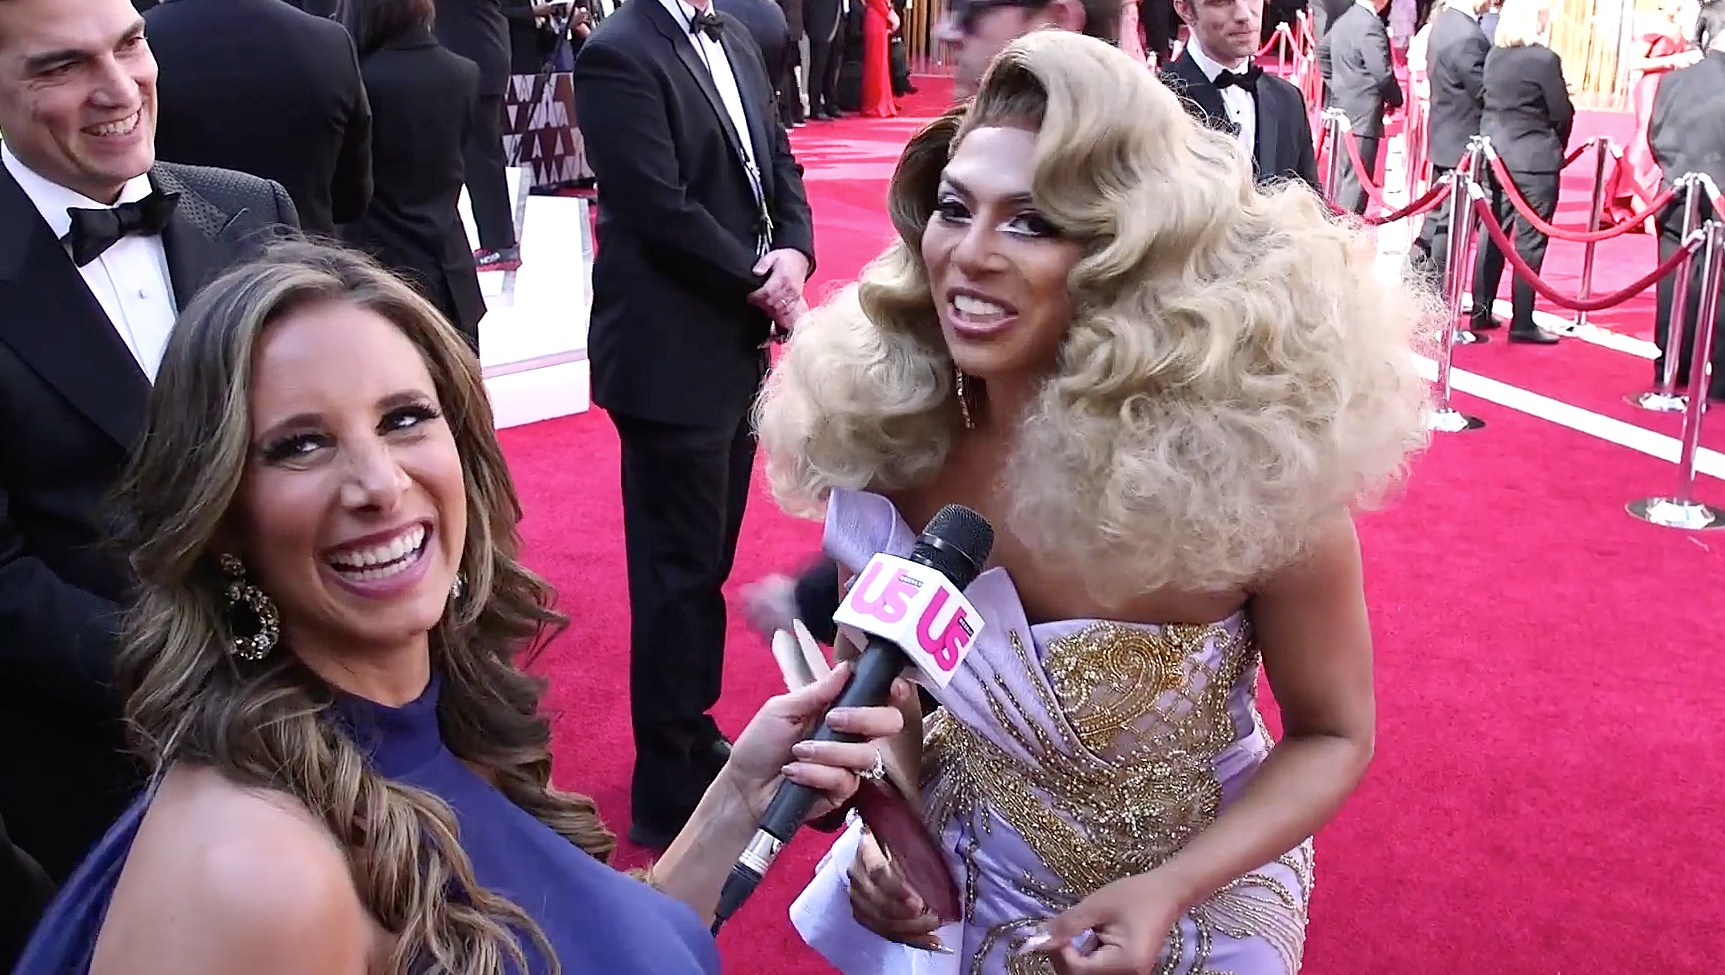 Watch All the Celebrity Outtakes From Us Weekly's Red Carpet Interviews at the 2019 Oscars